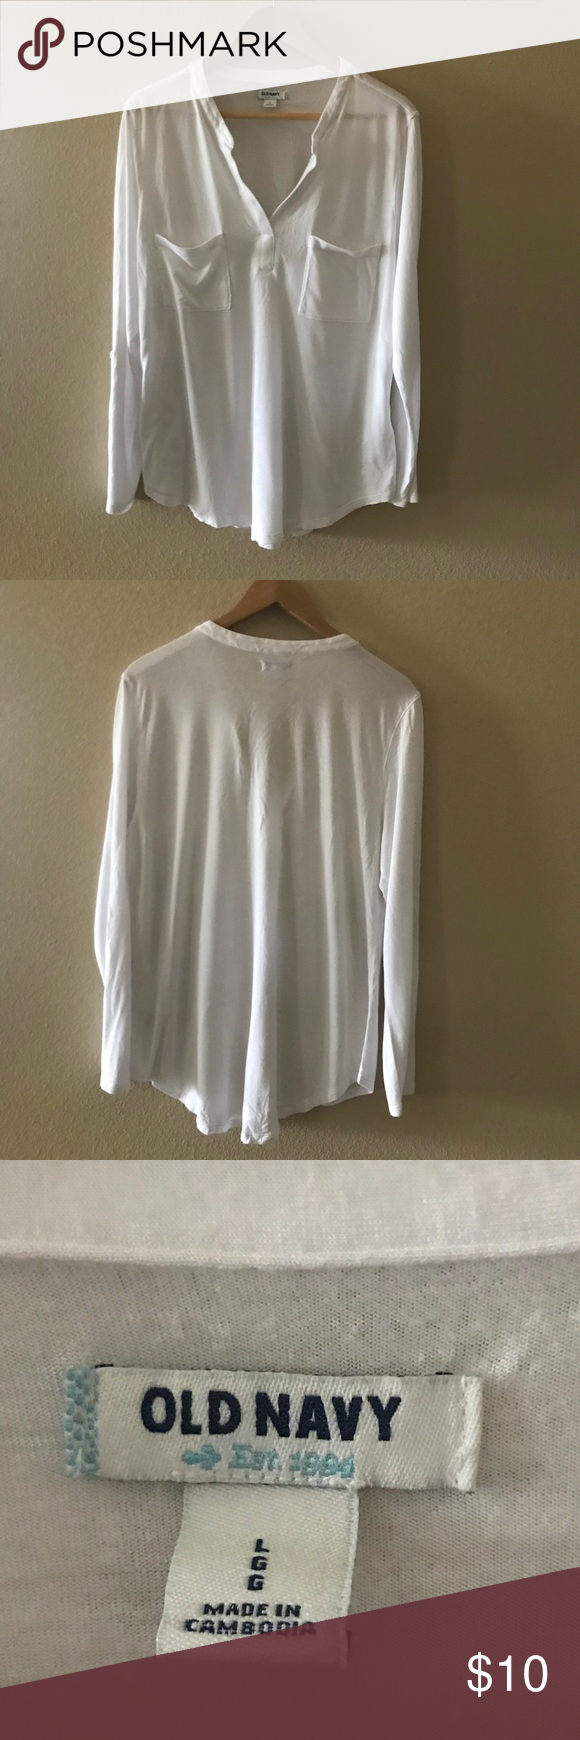 Old Navy White Shirt Great Condition Thank You For Shopping My Closet ❤ Old  Navy Tops Tees - Long Sleeve 3c8d29004